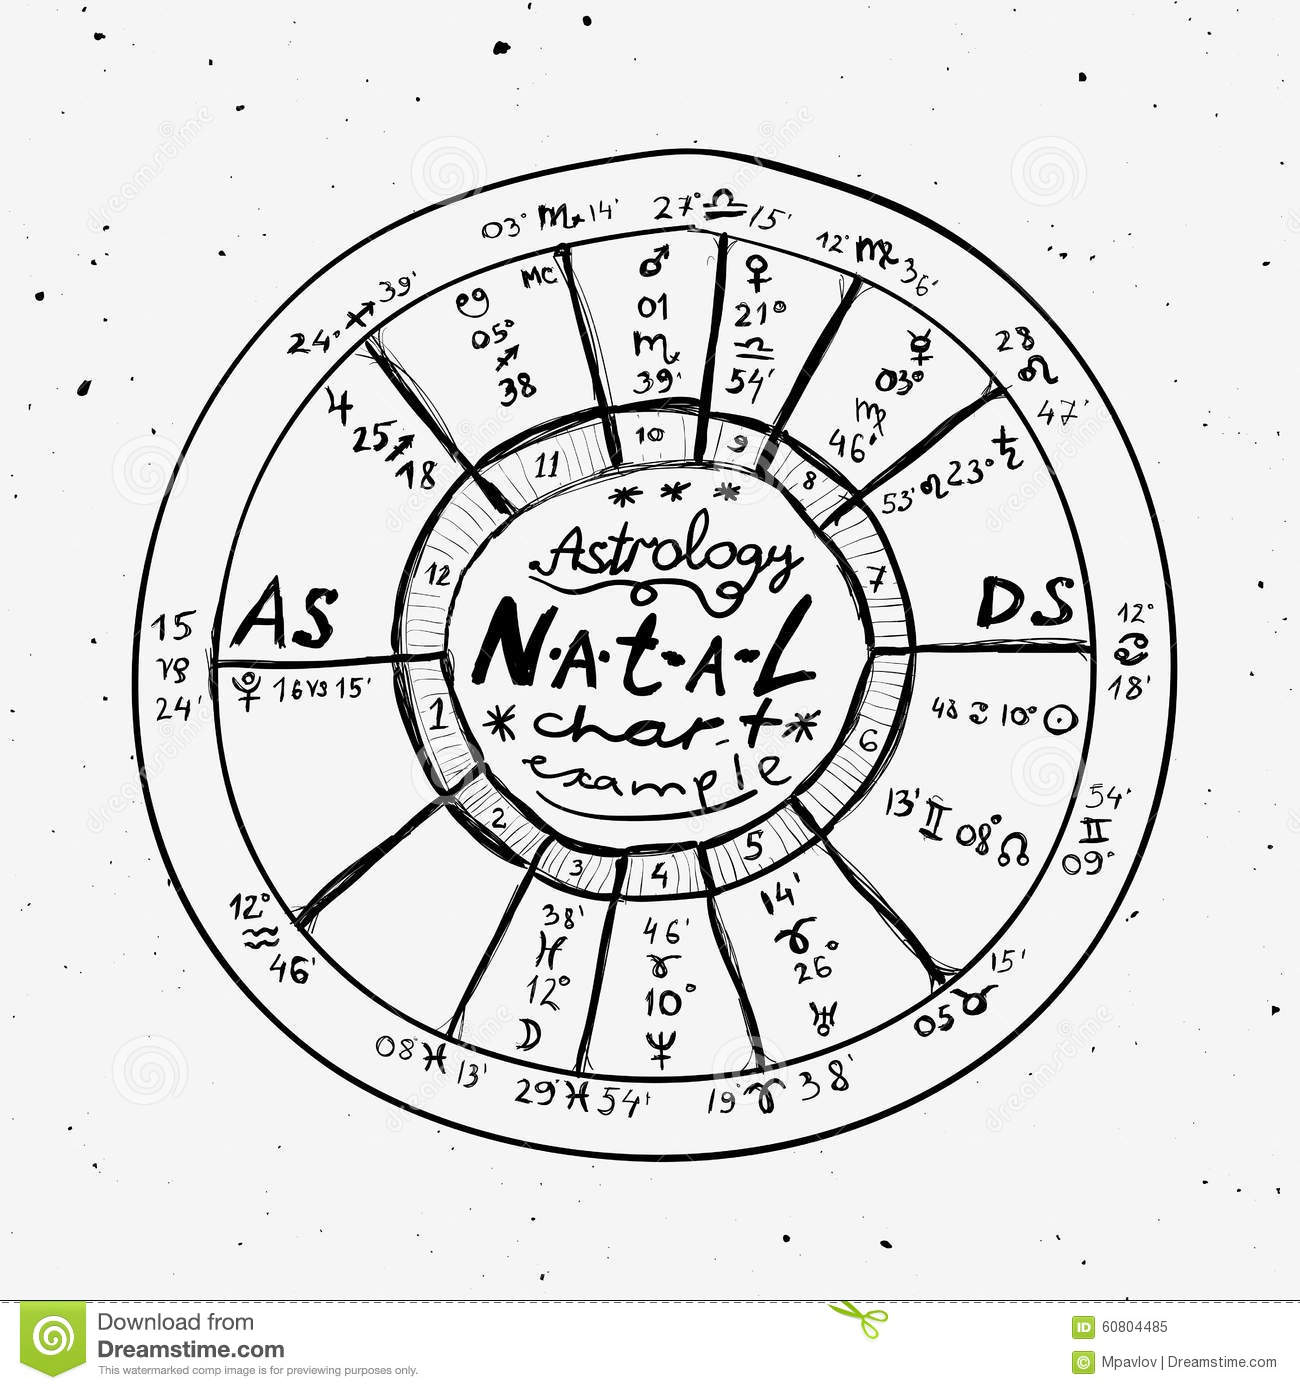 Astrology hand drawn background stock vector illustration of astrology hand drawn background nvjuhfo Image collections